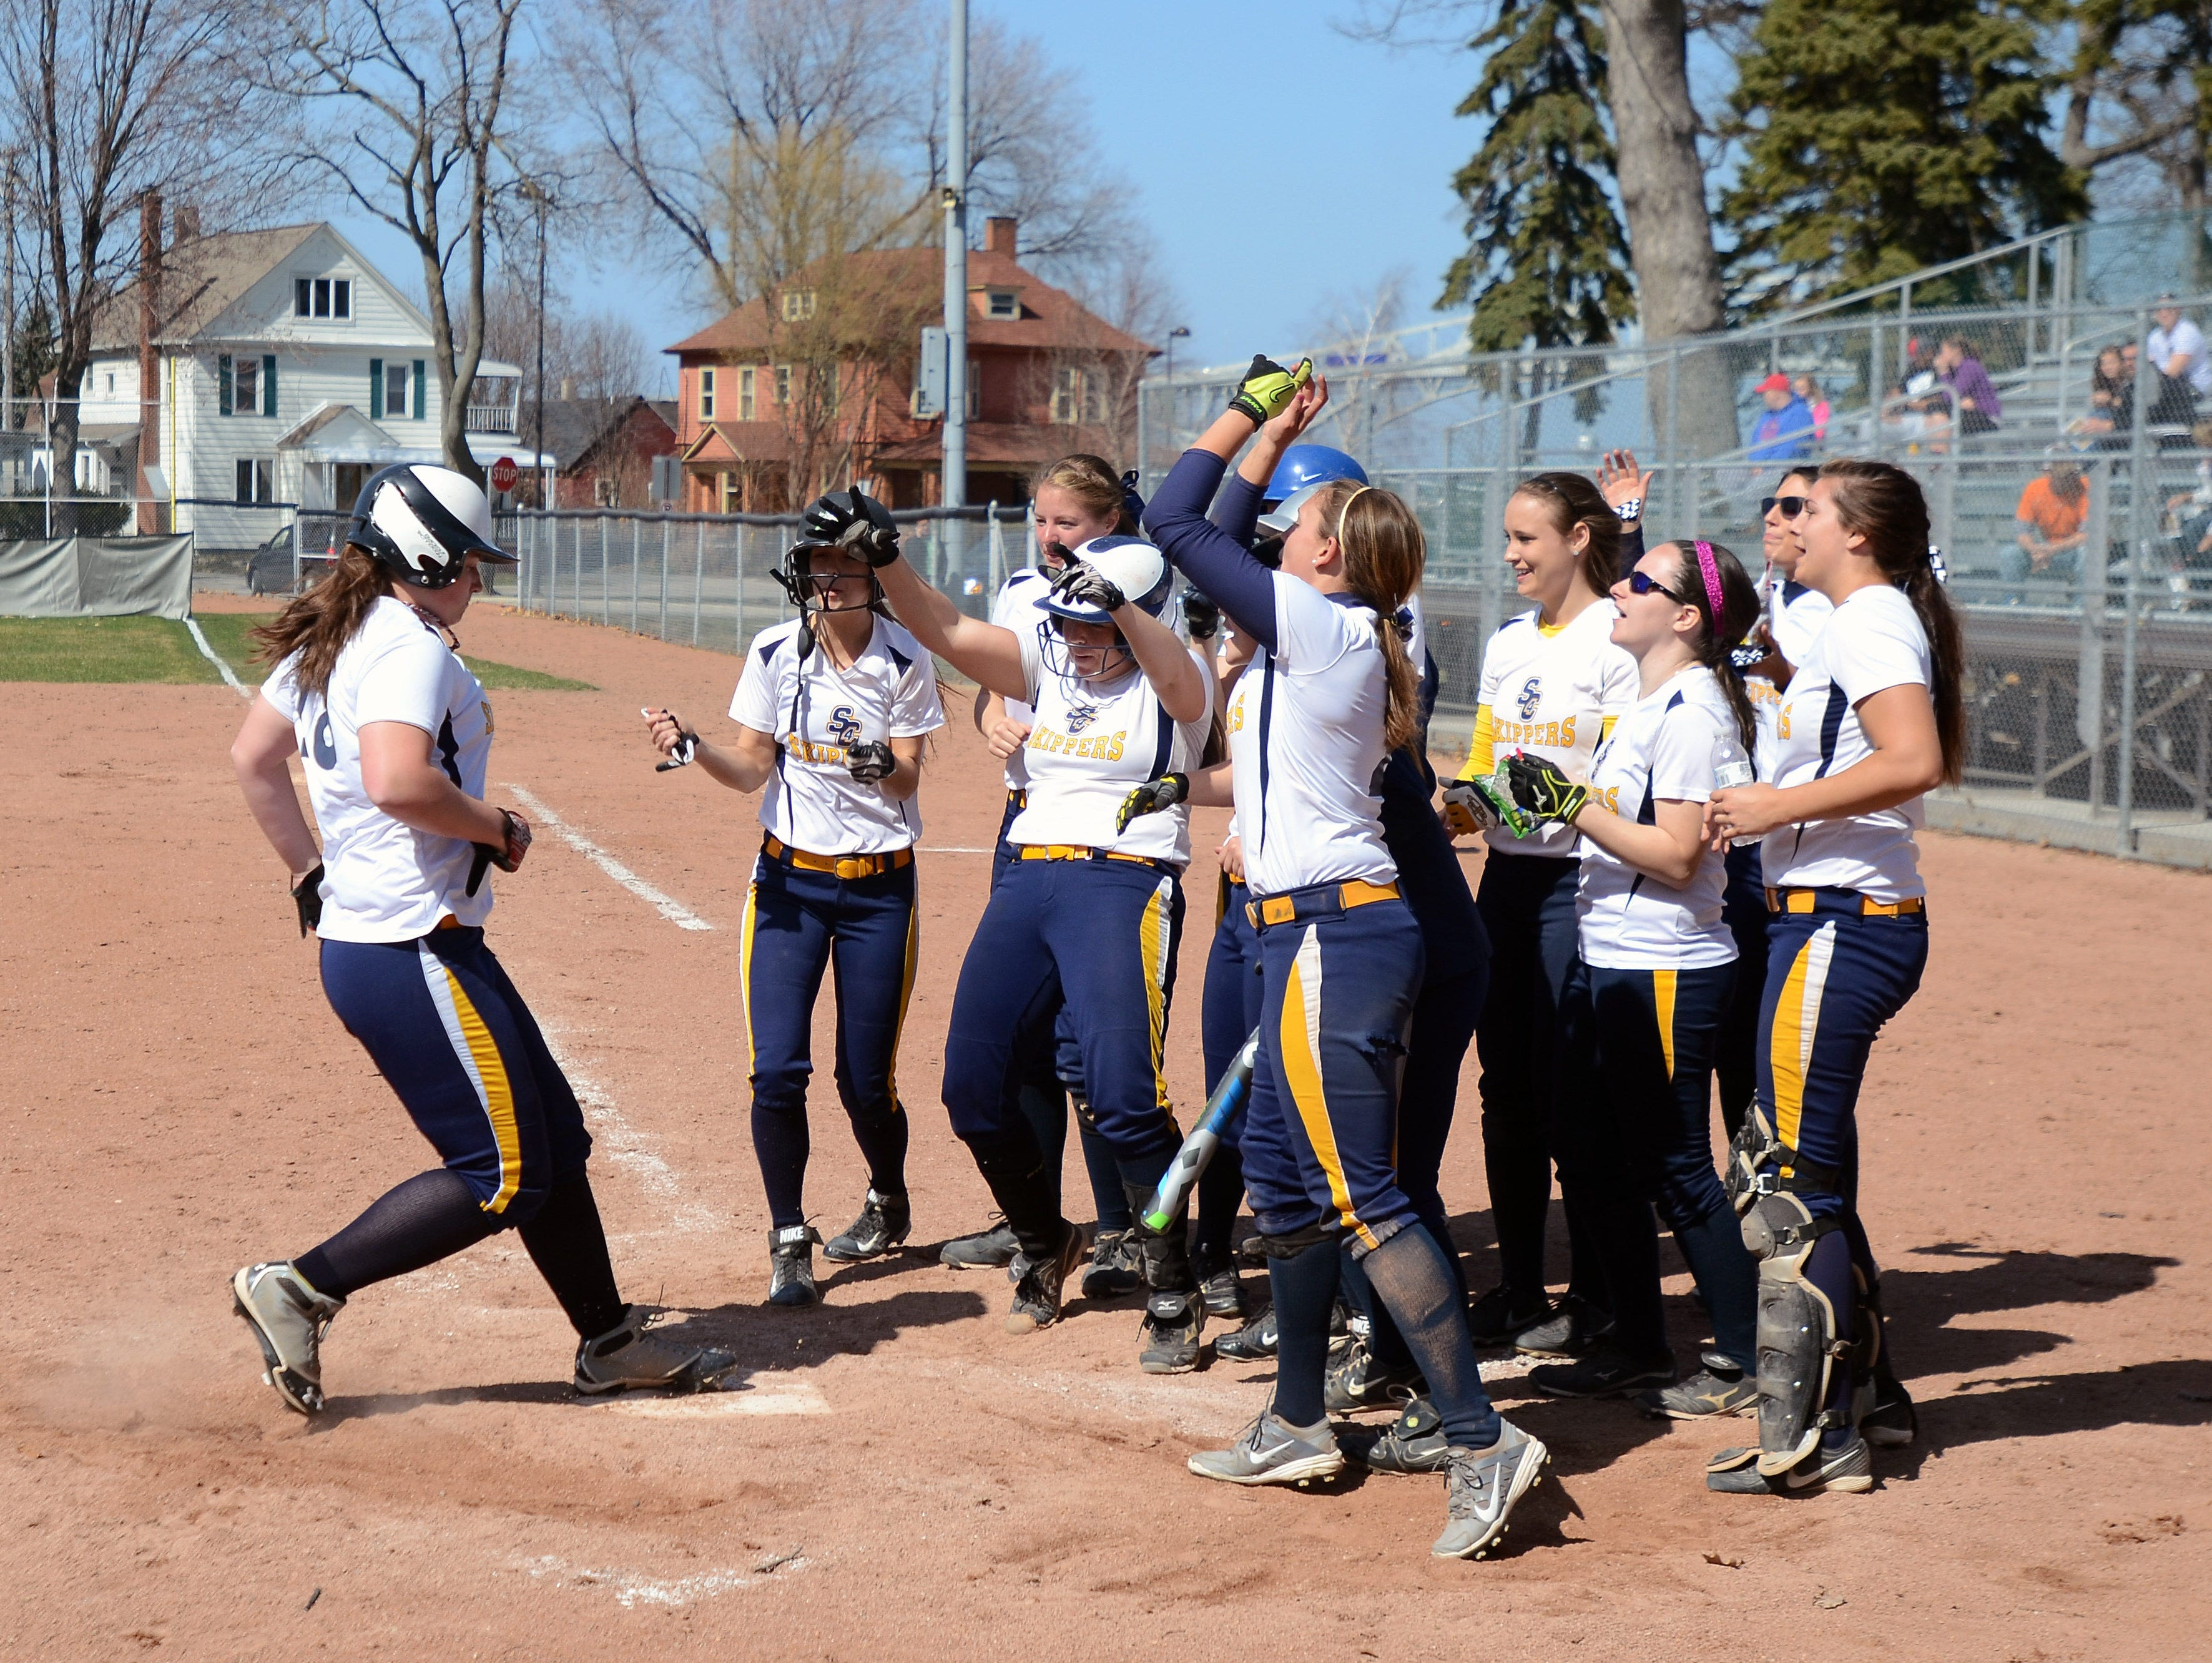 Alyson Edgemon's Skipper teammates meet her at home plate after her home run Sunday during a game against Oakland Community College at Pine Grove Park.